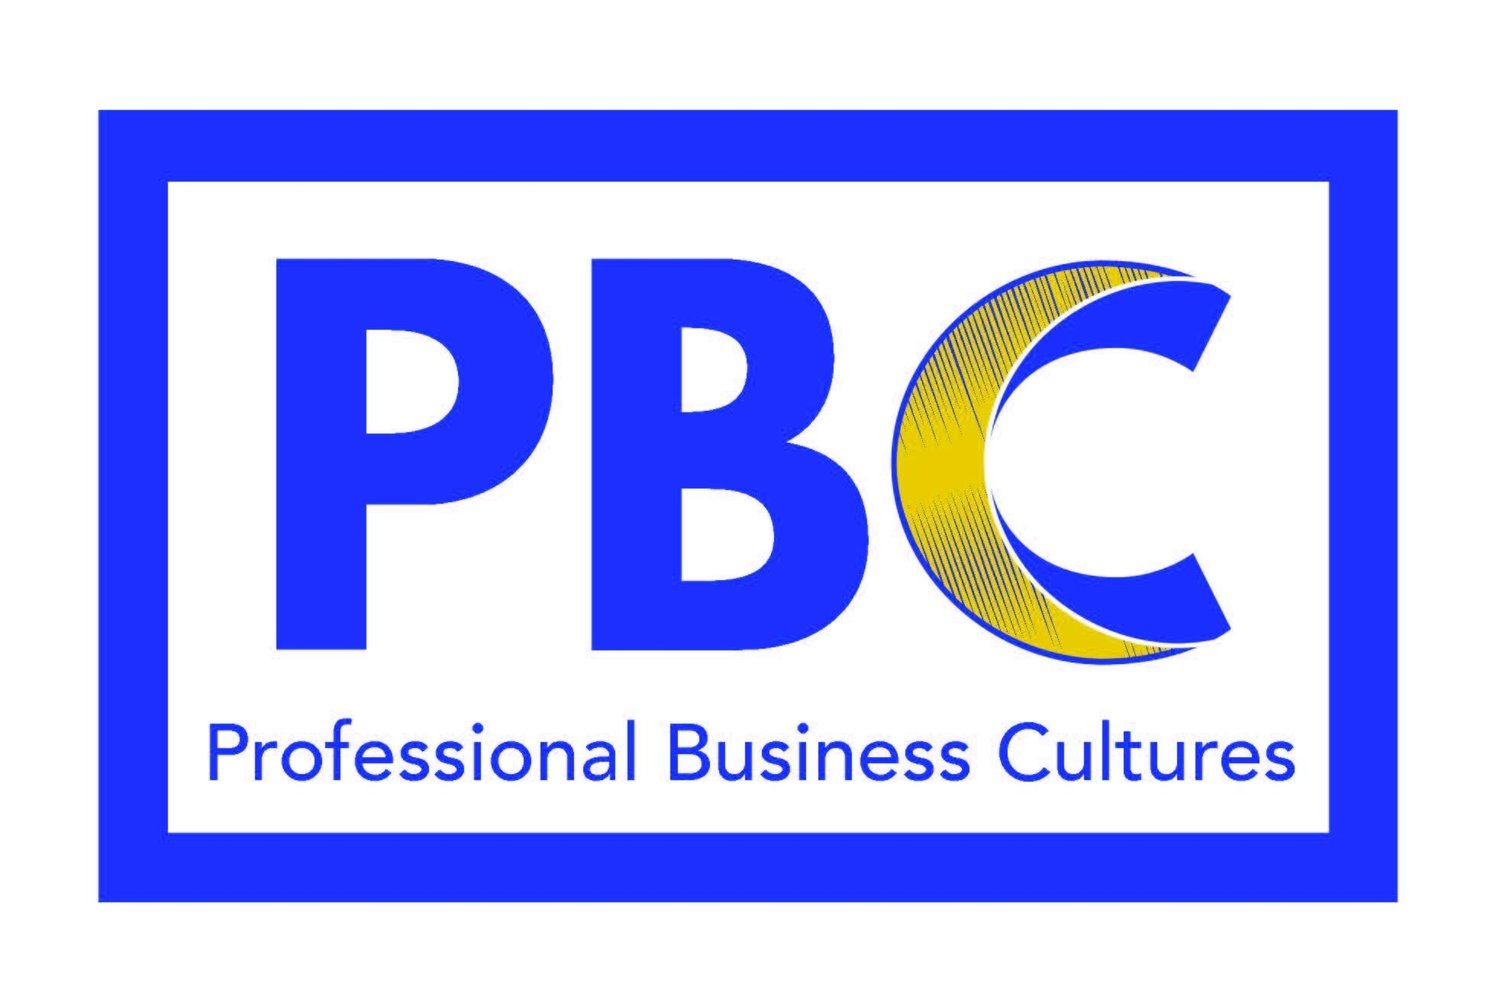 Professional Business Cultures